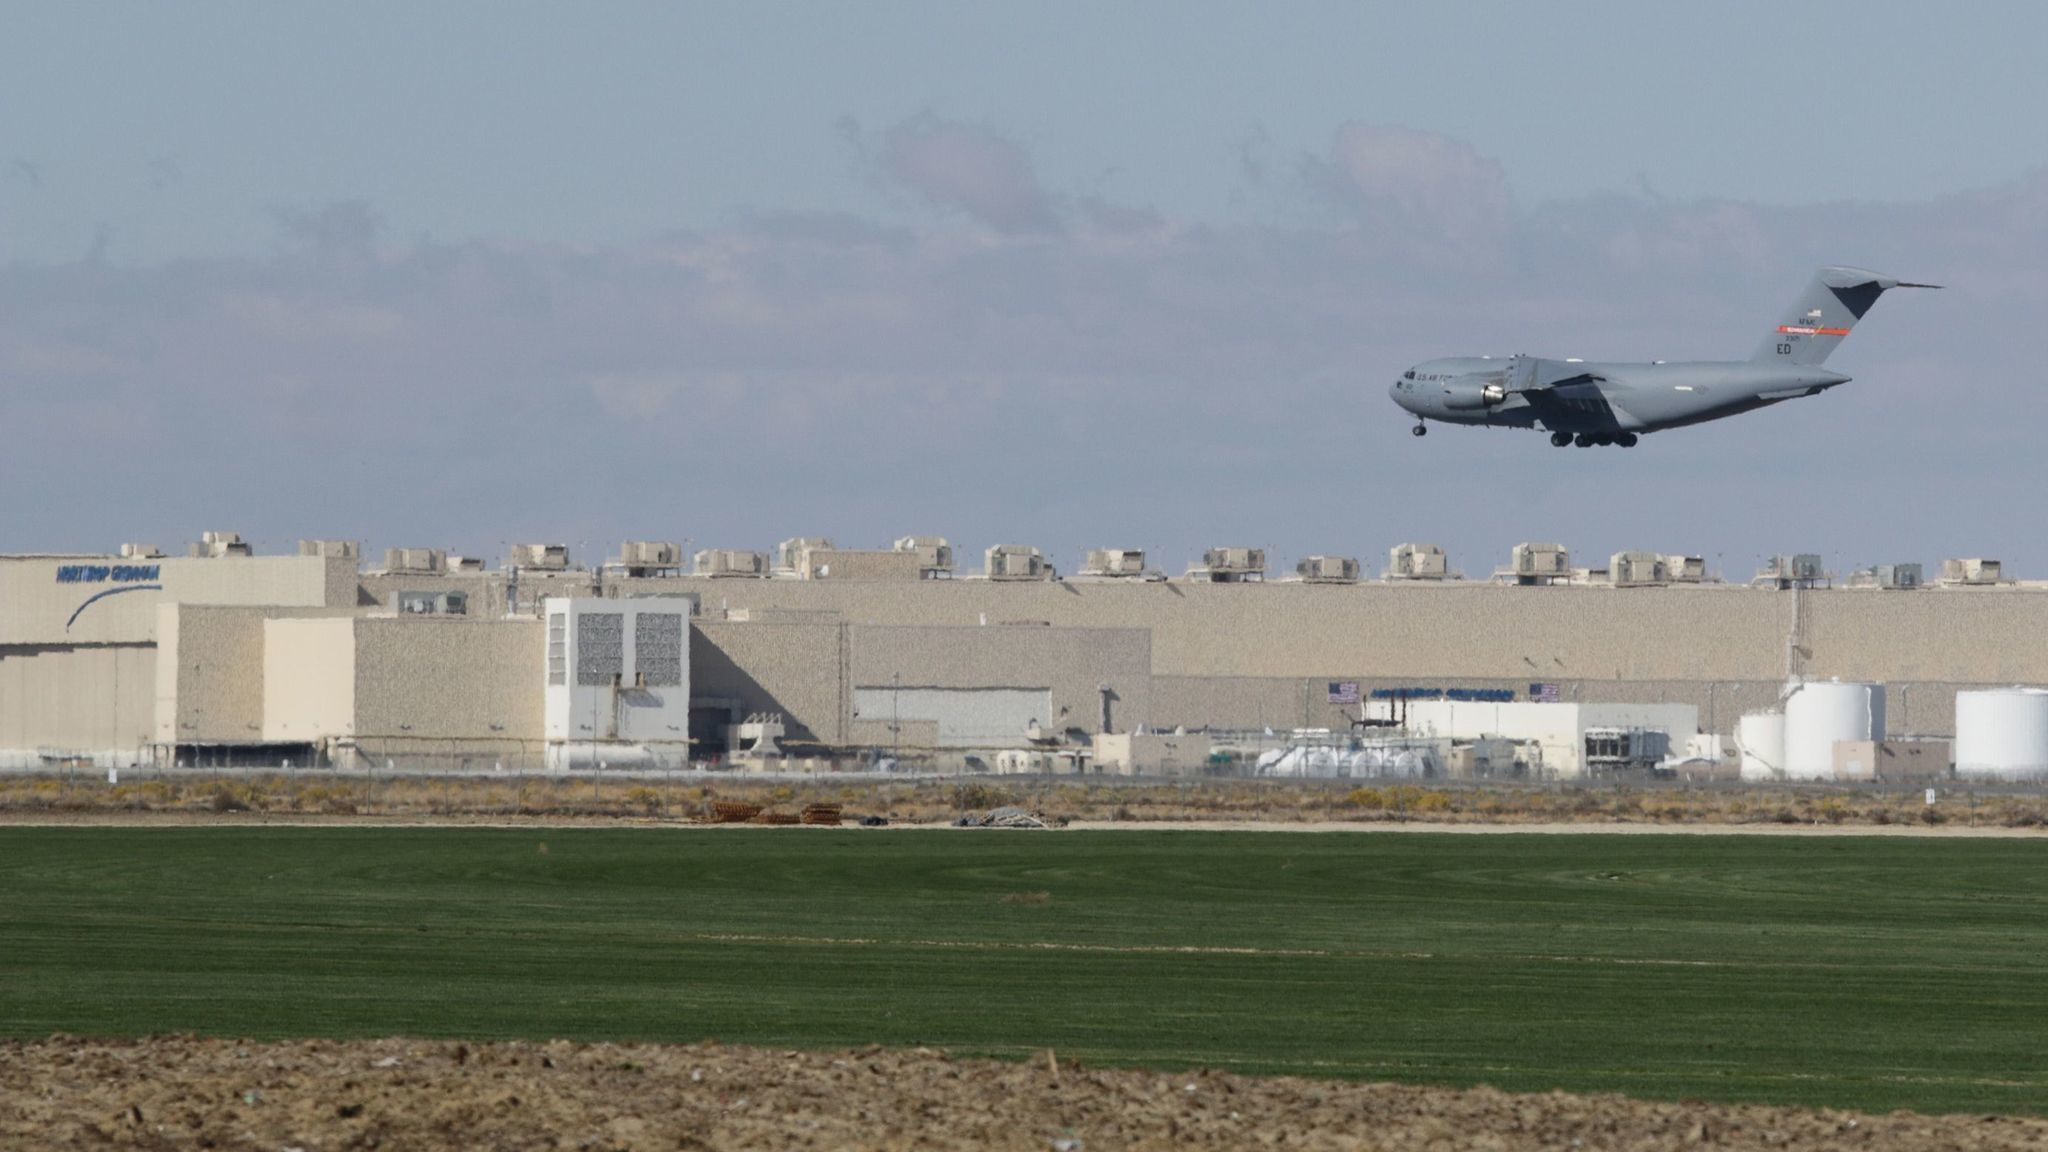 A Boeing C-17 Globemaster III lands at Palmdale Regional Airport during recent exercise flights. Northrop Grumman (background) was awarded the new B-21 bomber contract in 2015. (Credit: Myung J. Chun / Los Angeles Times